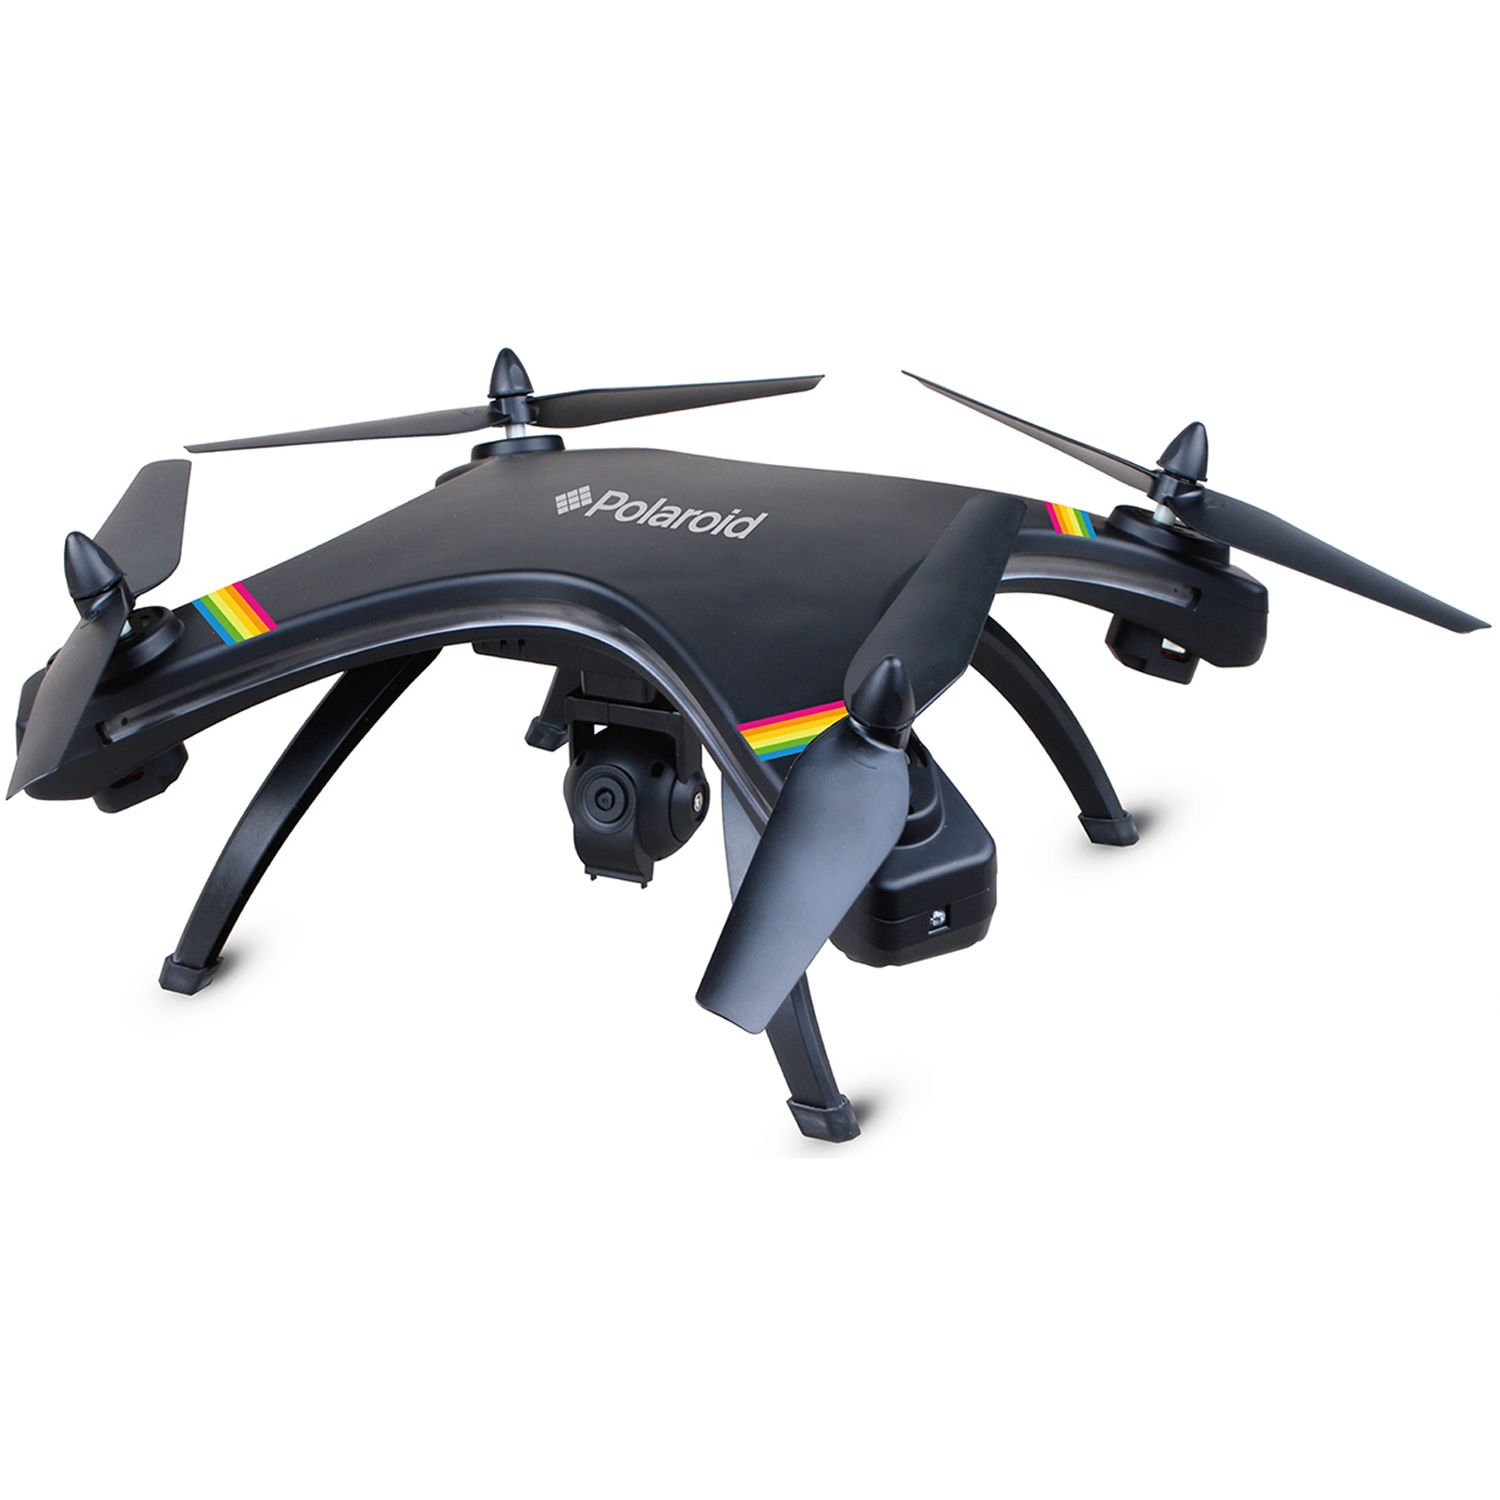 Polaroid PL2900 Remote Control Camera Drone, Black by Polaroid Originals